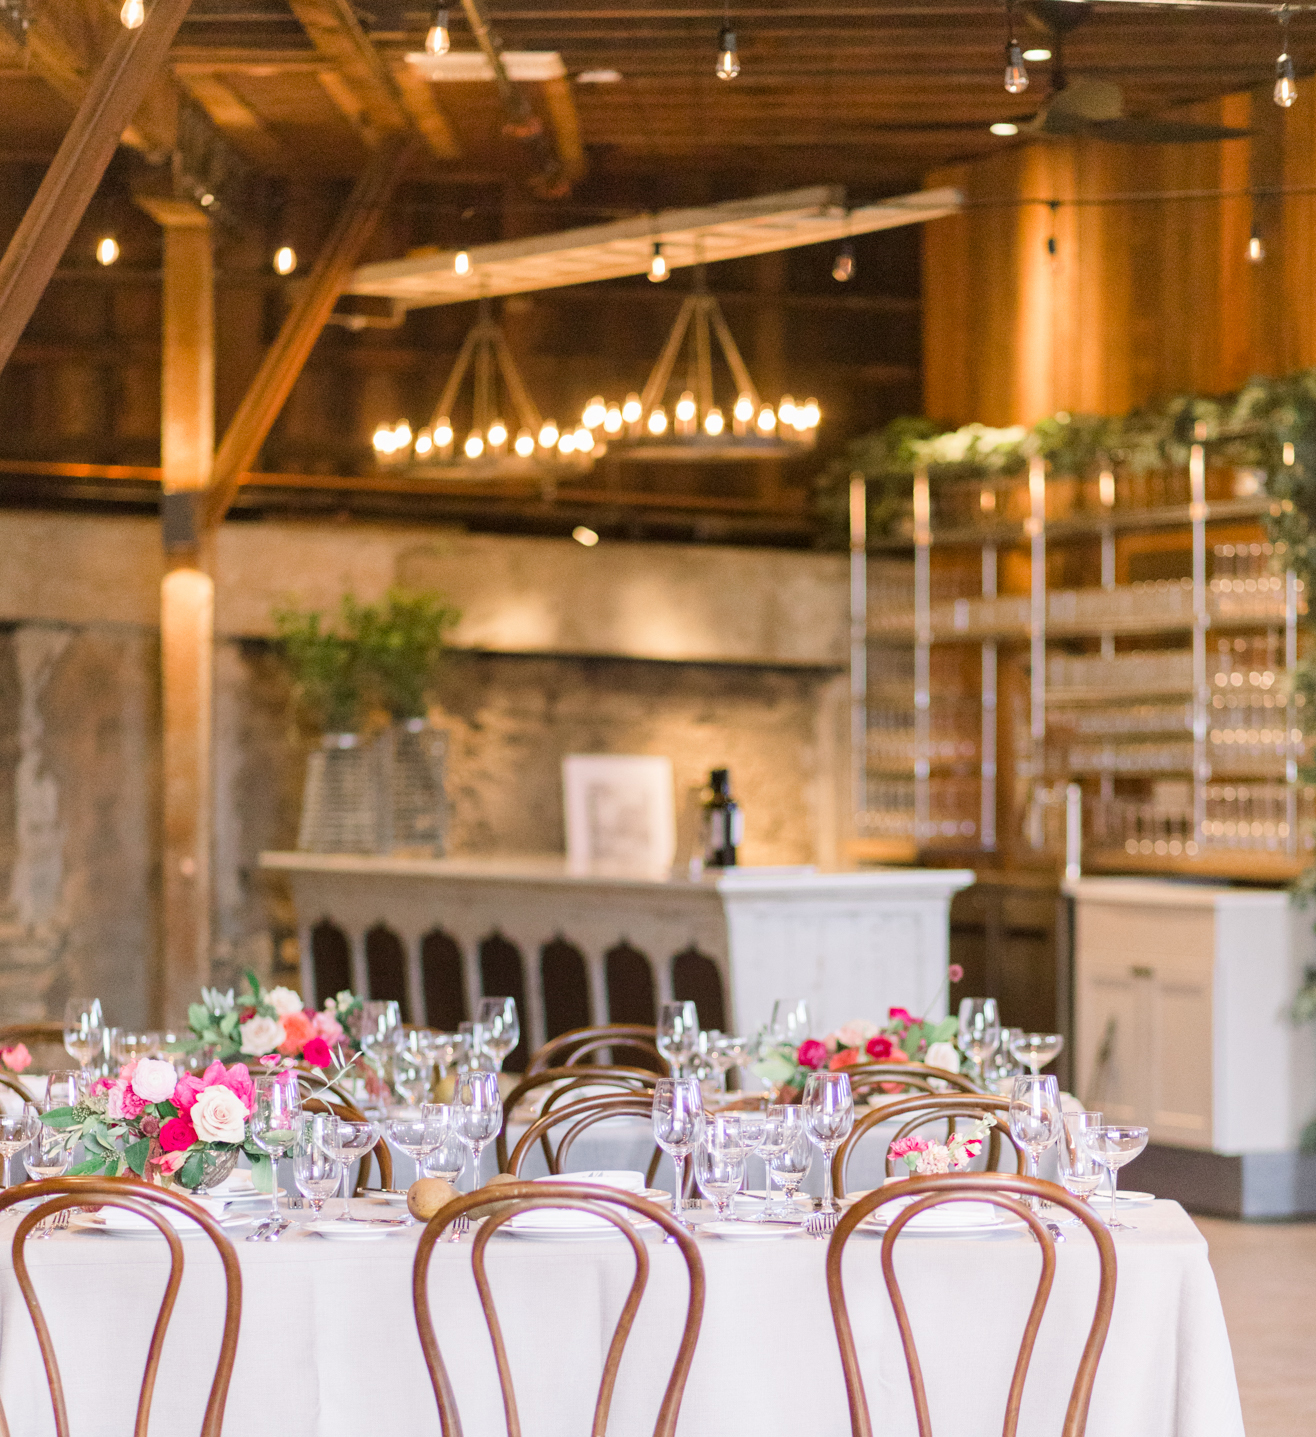 Bar Area in Cooper Molera Barns - De Joy Photography